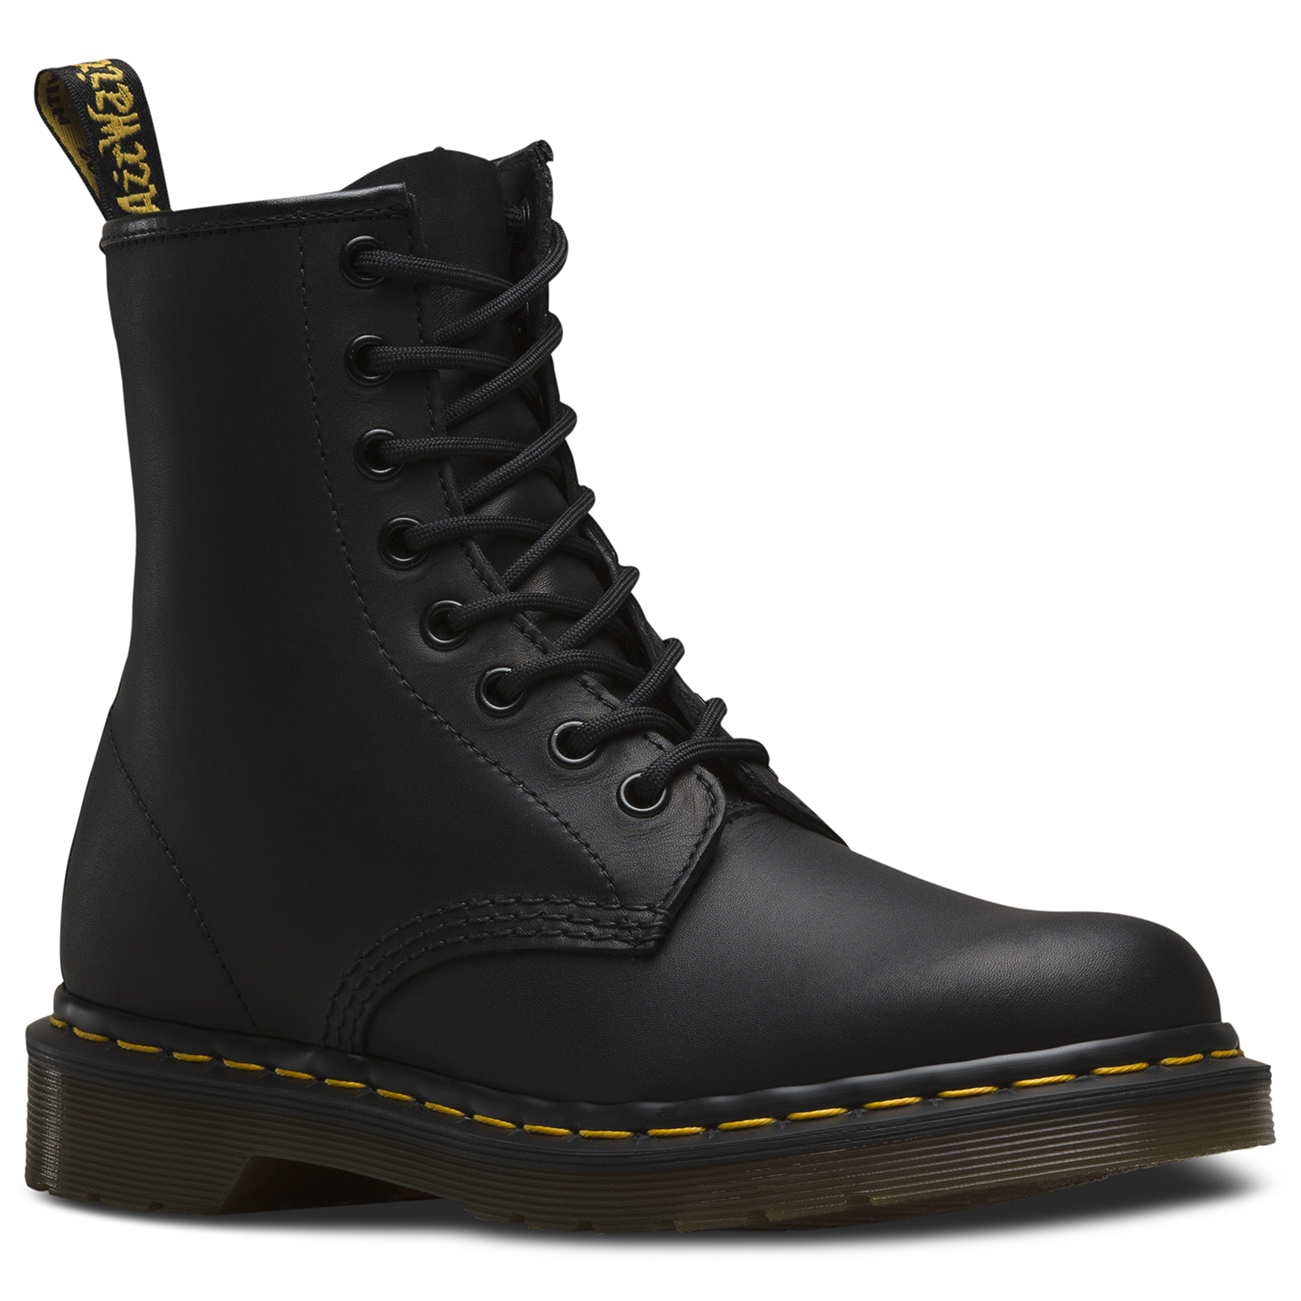 Unisex Adults Dr Martens 1460 Greasy